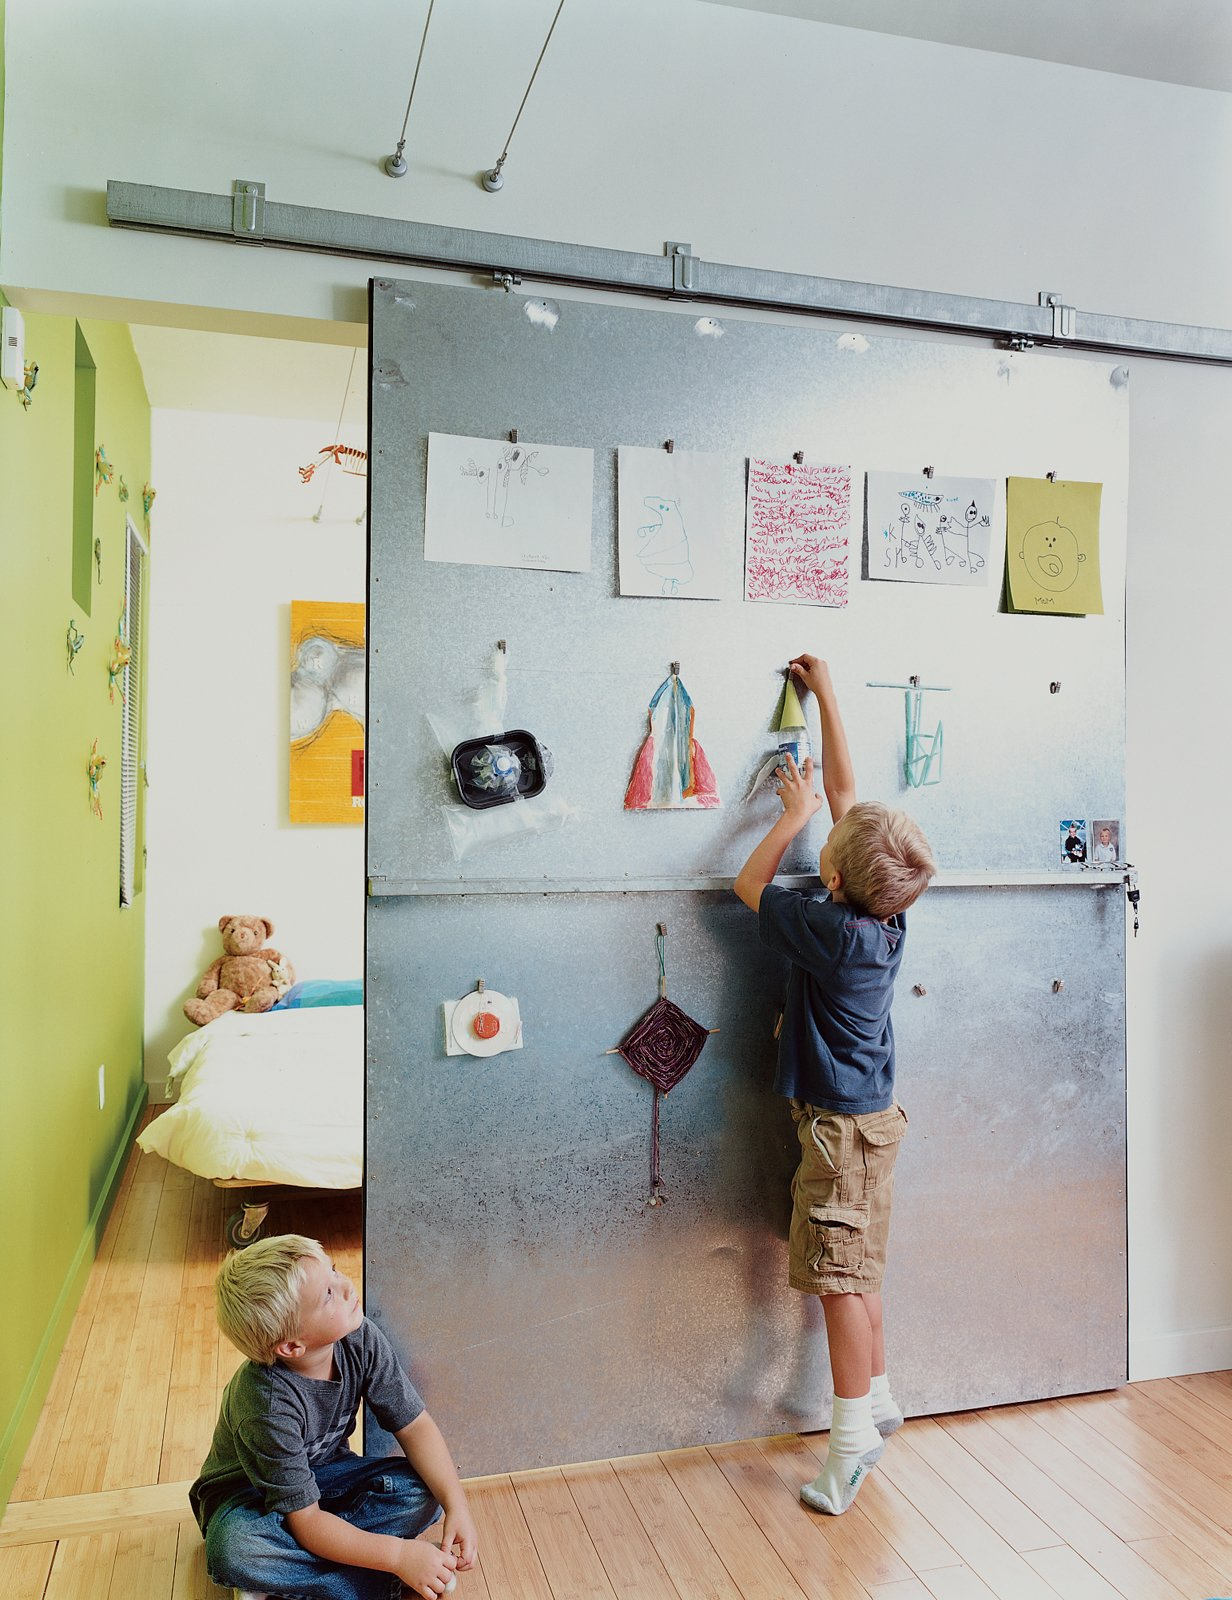 David Baird designed the custom sliding doors with materials and hardware from Home Depot. The doors also act as a makeshift critique wall for Bo and Sky's artwork.